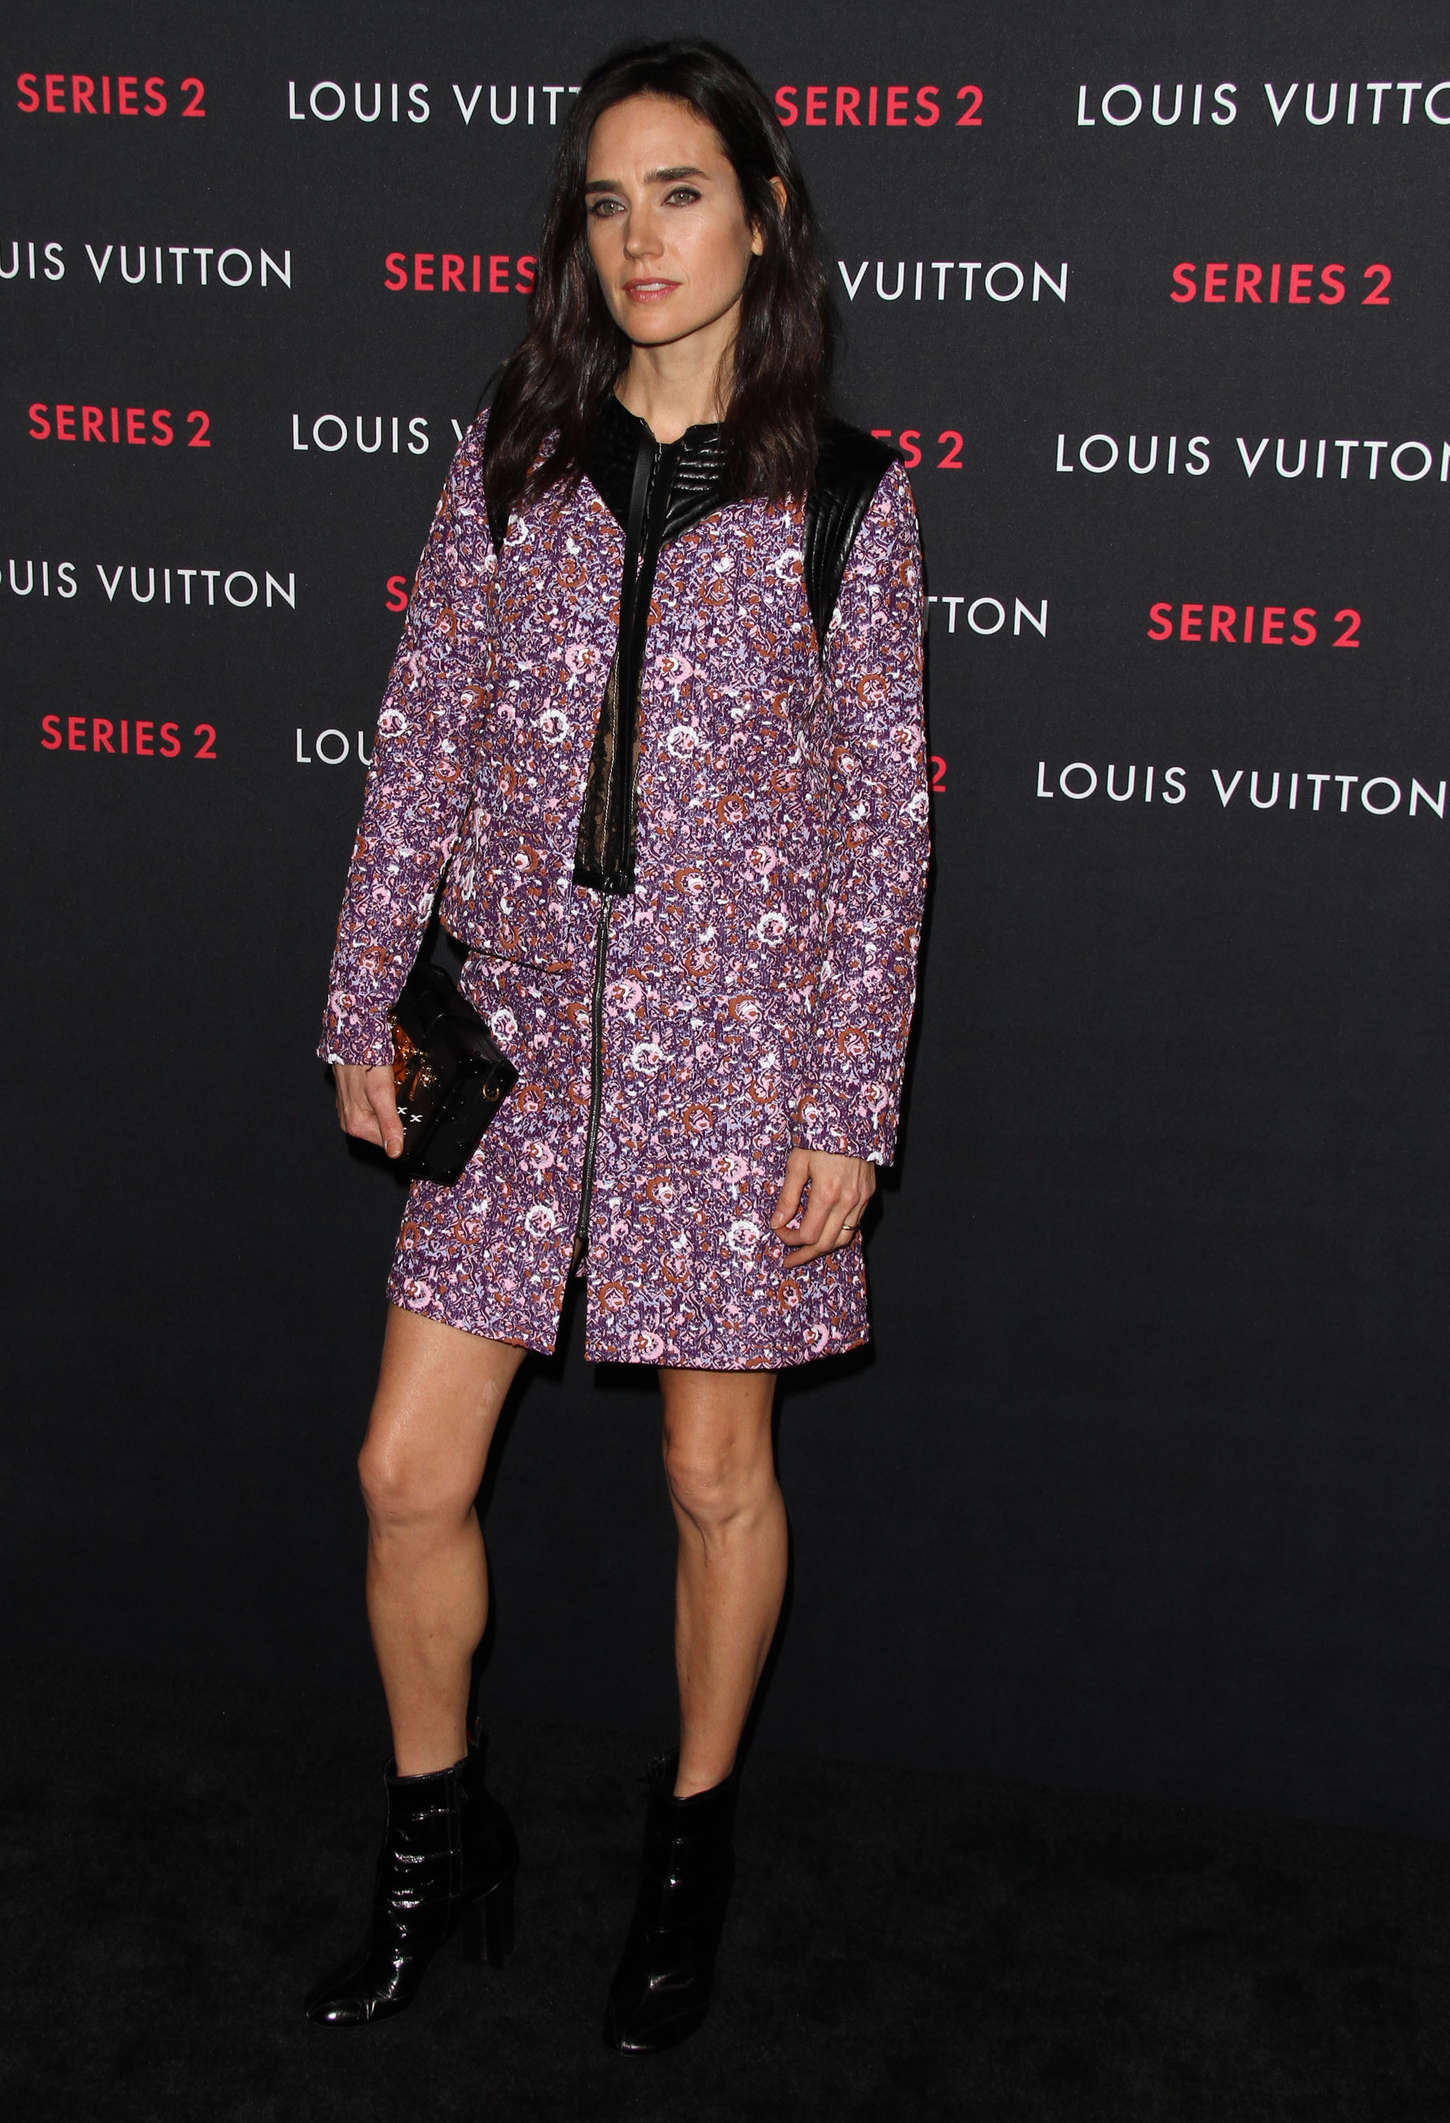 """Jennifer Connelly - Louis Vuitton """"Series 2"""" The Exhibition in Hollywood"""